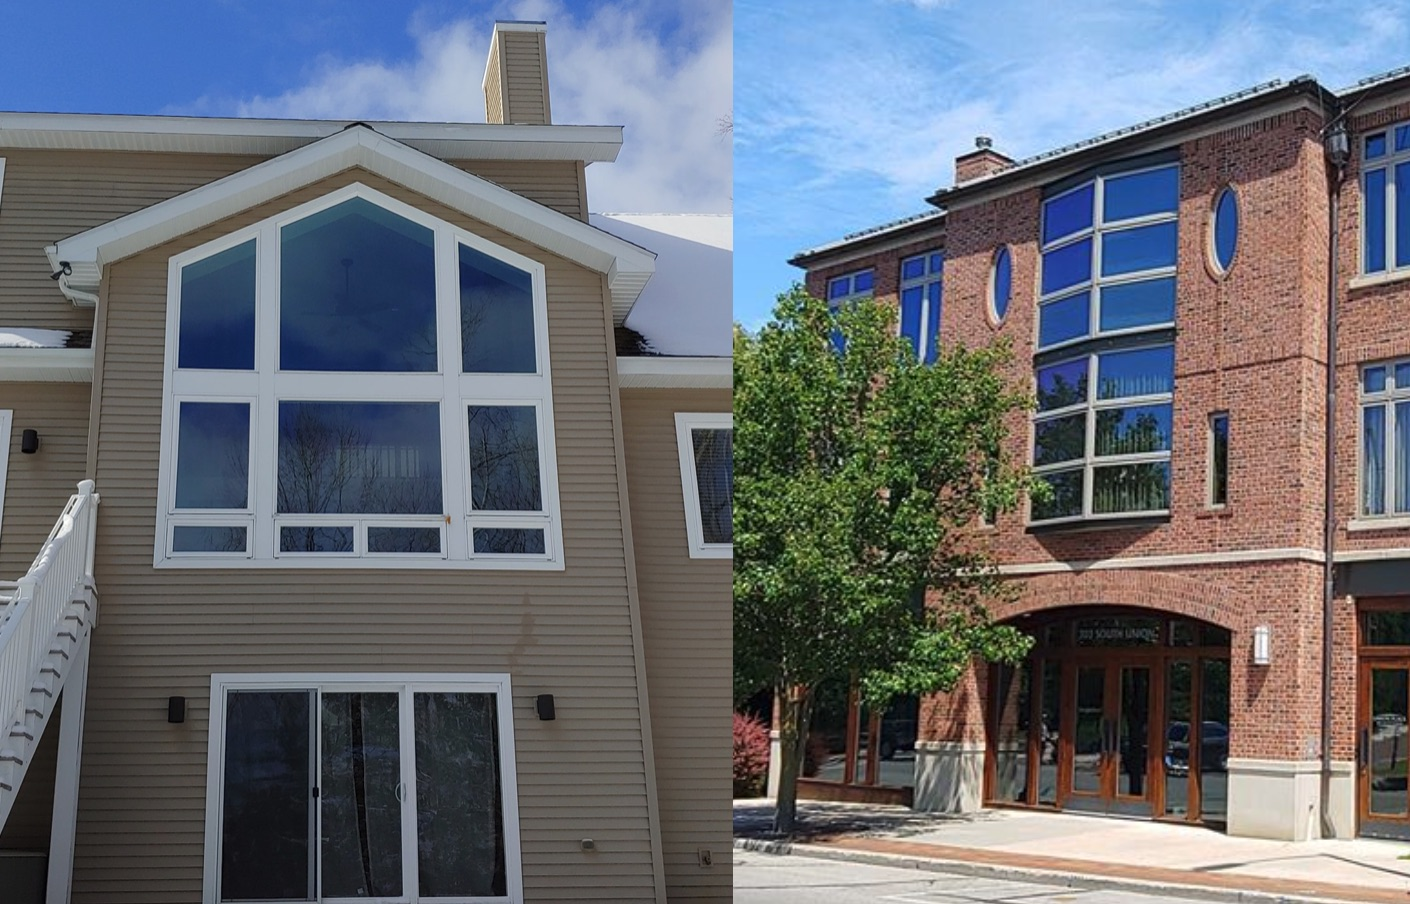 Cost Effective Energy Saving Technology for Homes & Commercial Spaces - Home and Commercial Window Films in Cadillac, Traverse City, Grand Rapids and all of Western Michigan